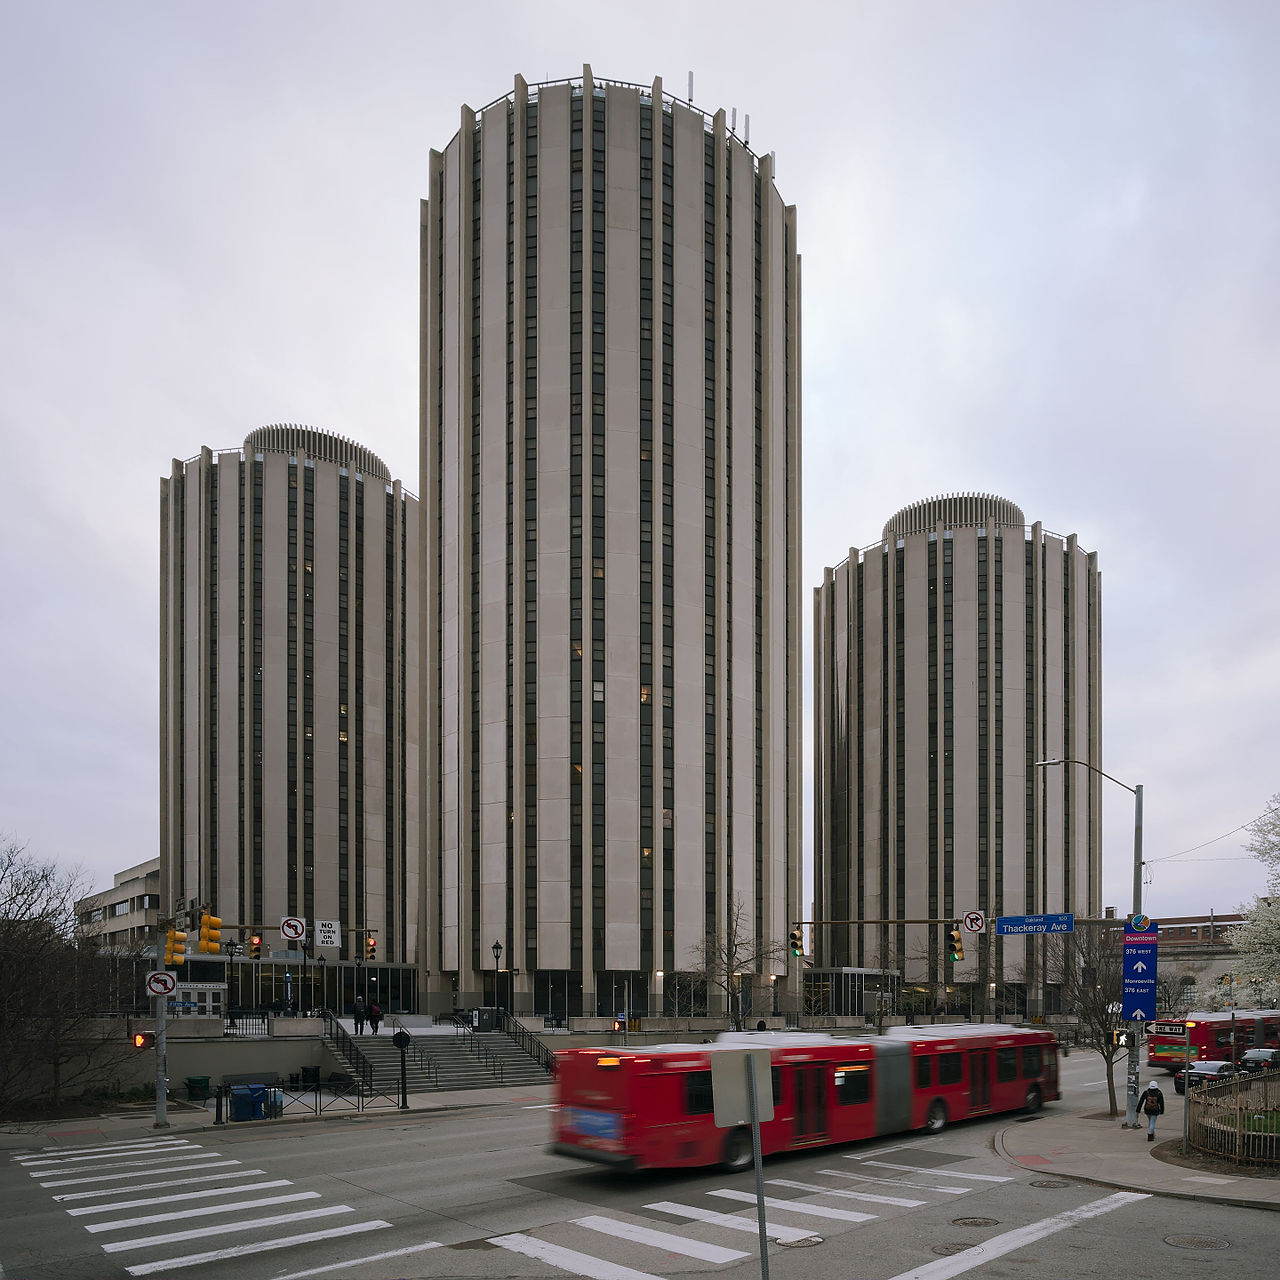 Litchfield Towers by Dettere and Richtey in 1963